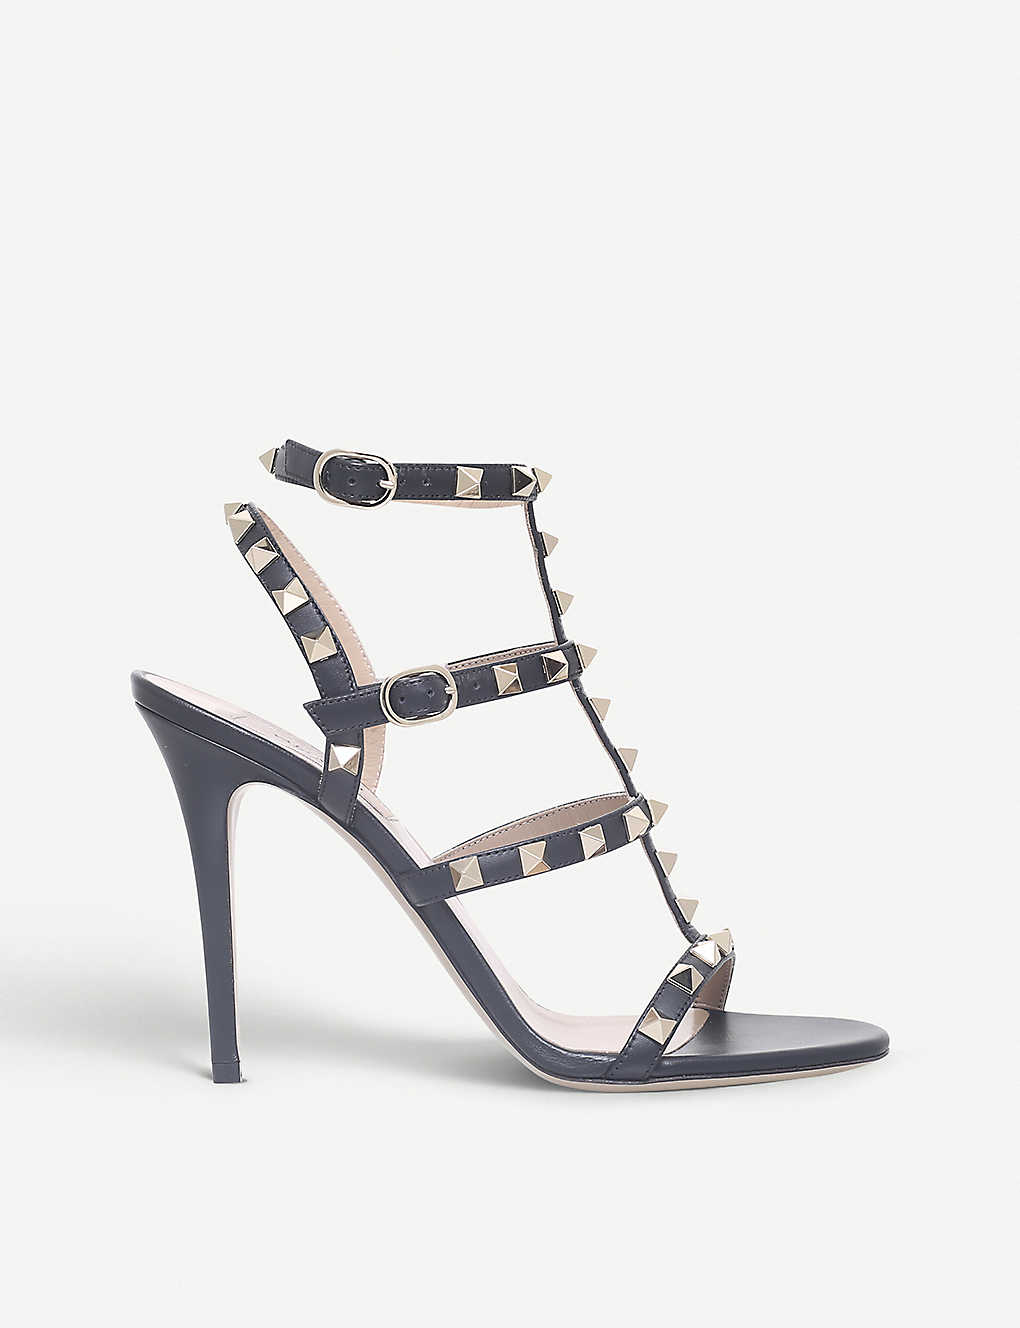 8f42838341c VALENTINO - Rockstud 105 studded leather sandals